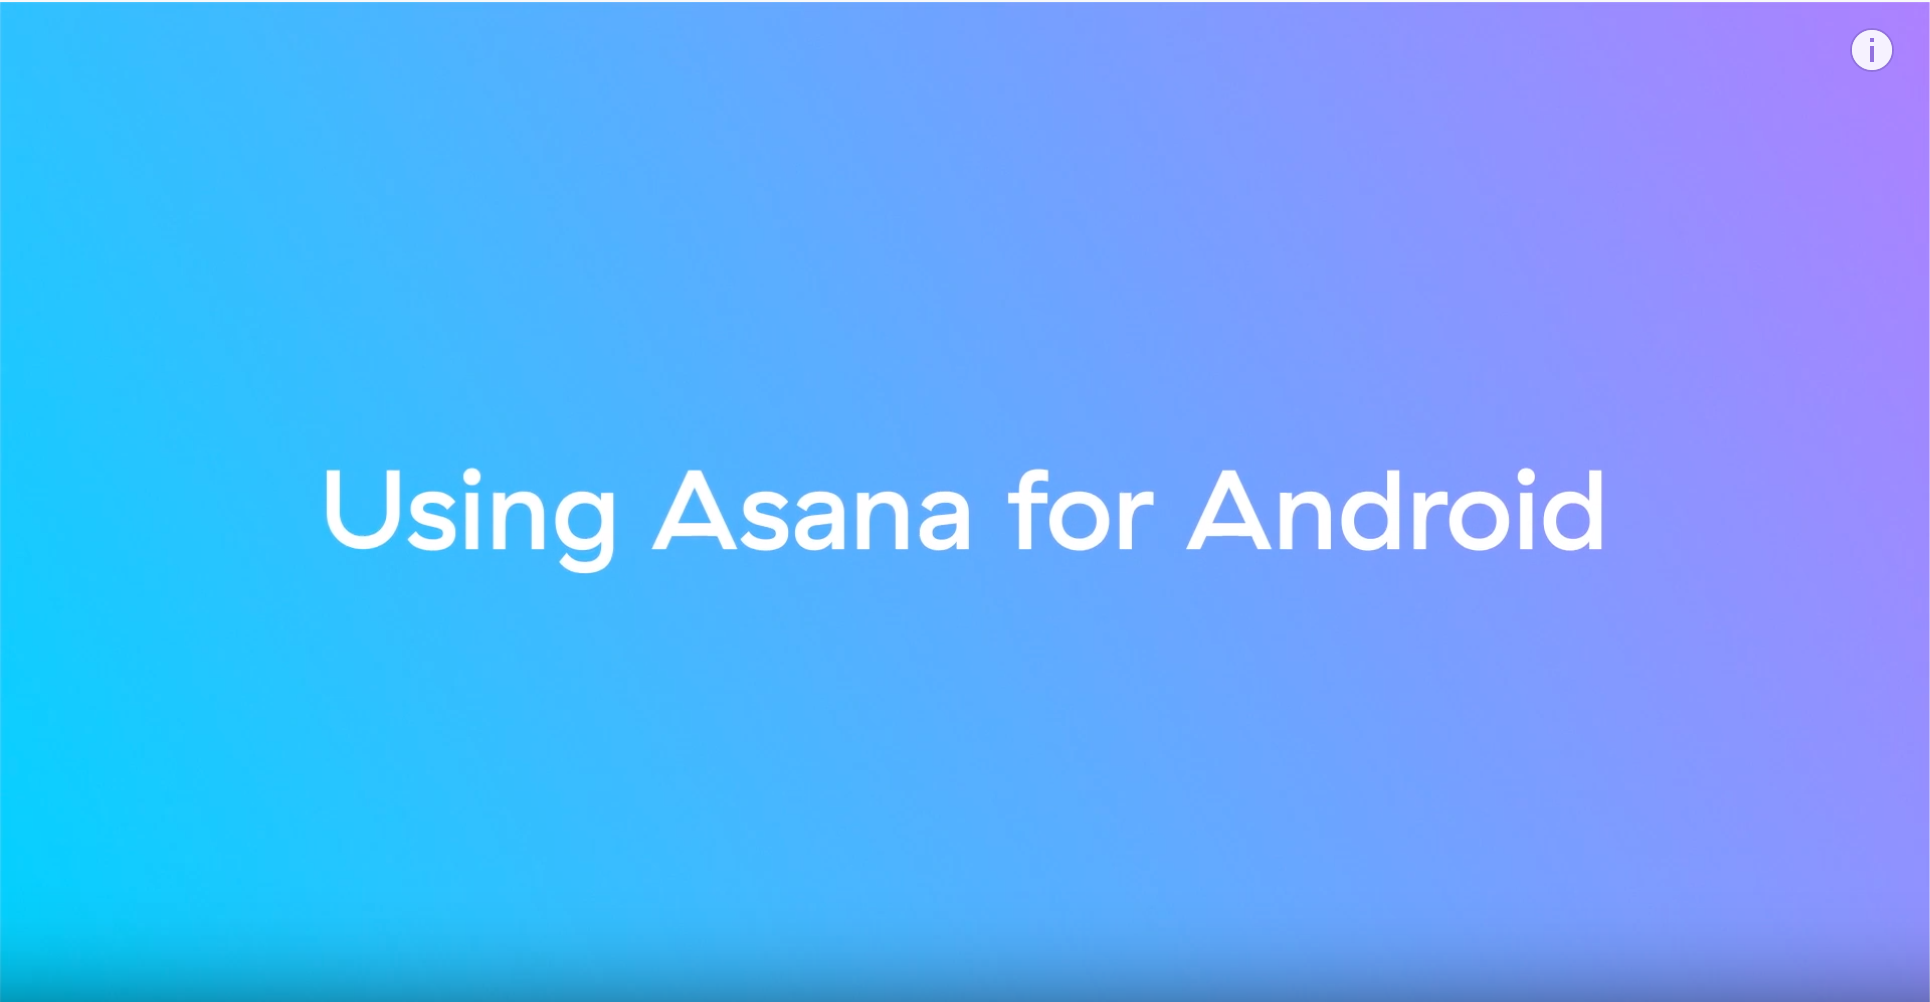 Using Asana for Android